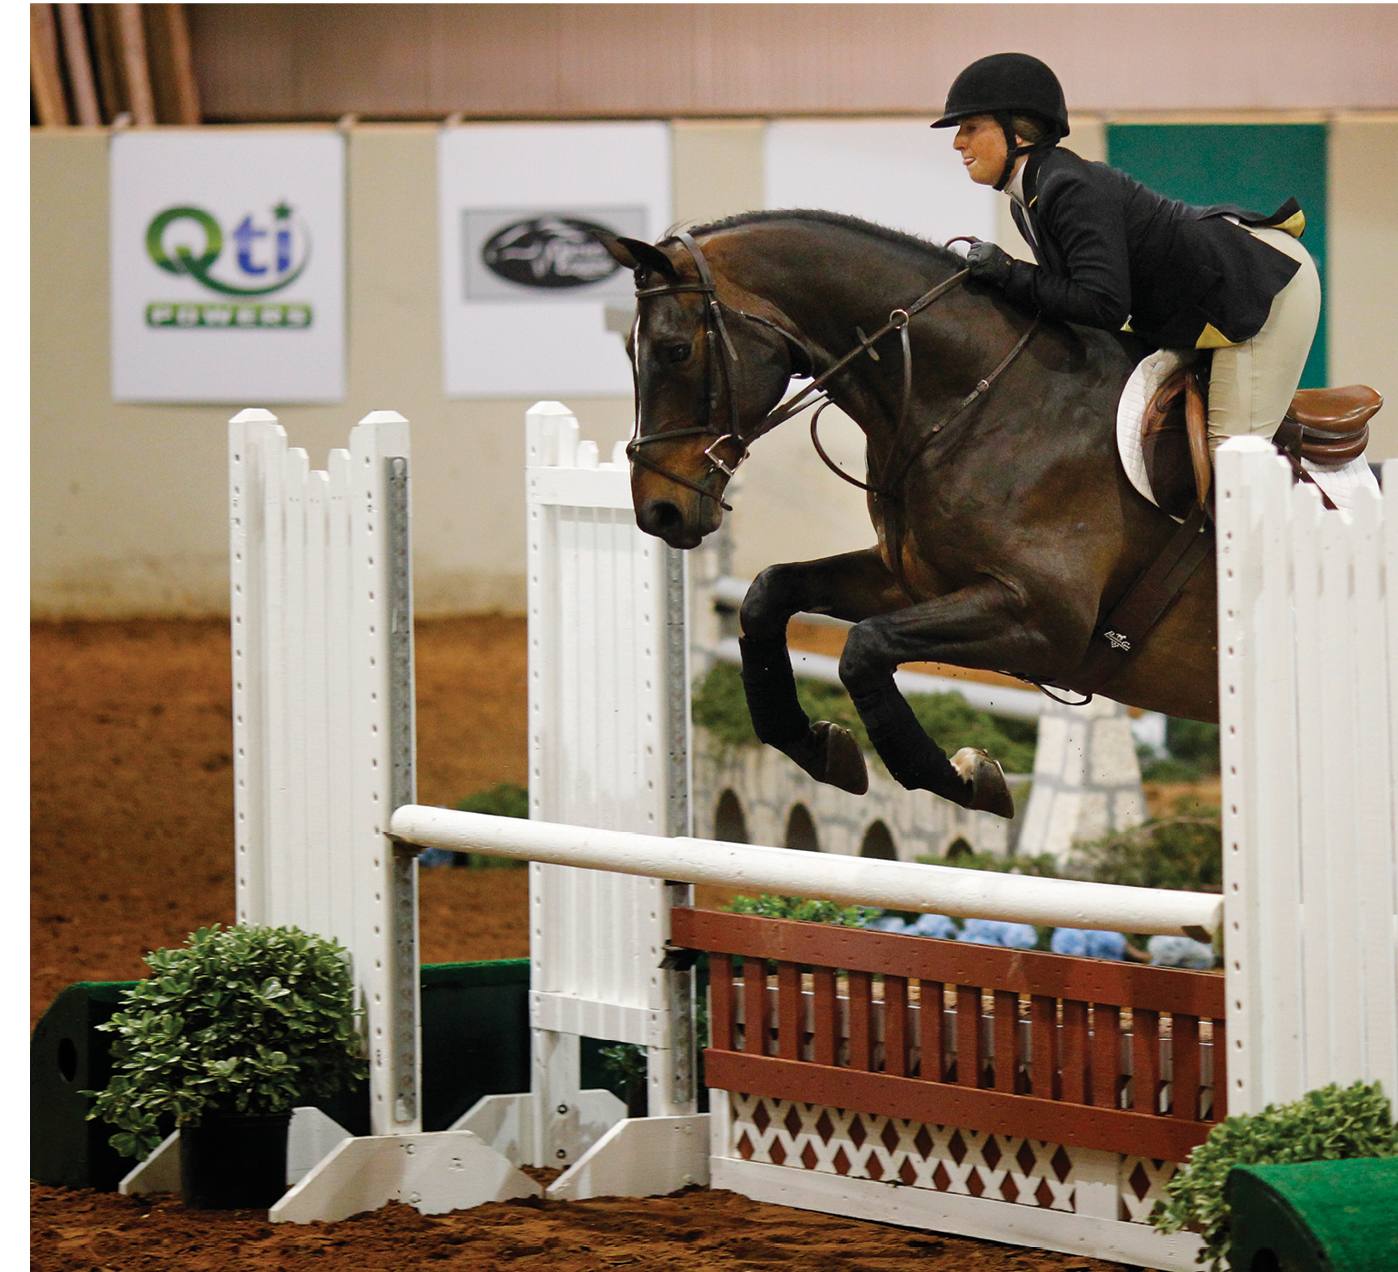 6 Things You Should Know About Baylor Equestrian Baylor